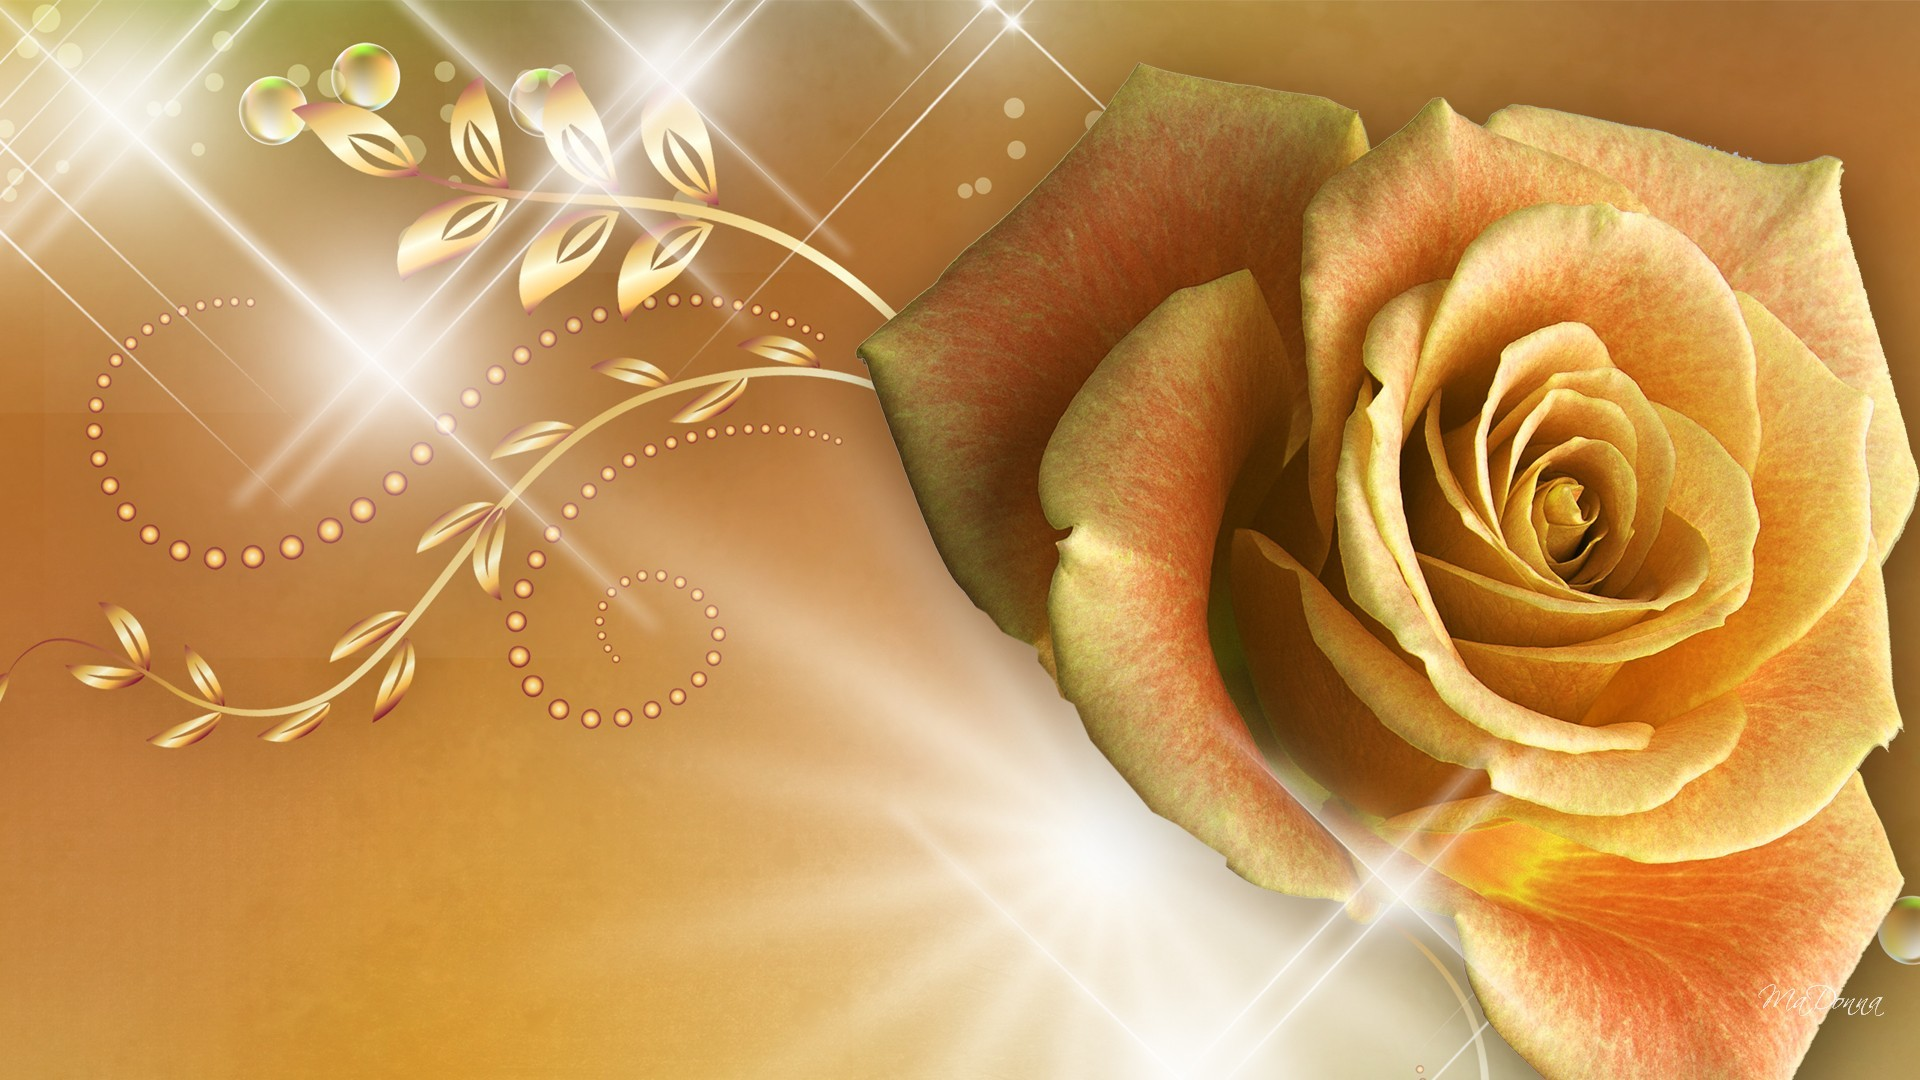 Rose , Rose Gold Roses Backgrounds (795303) , HD Wallpaper